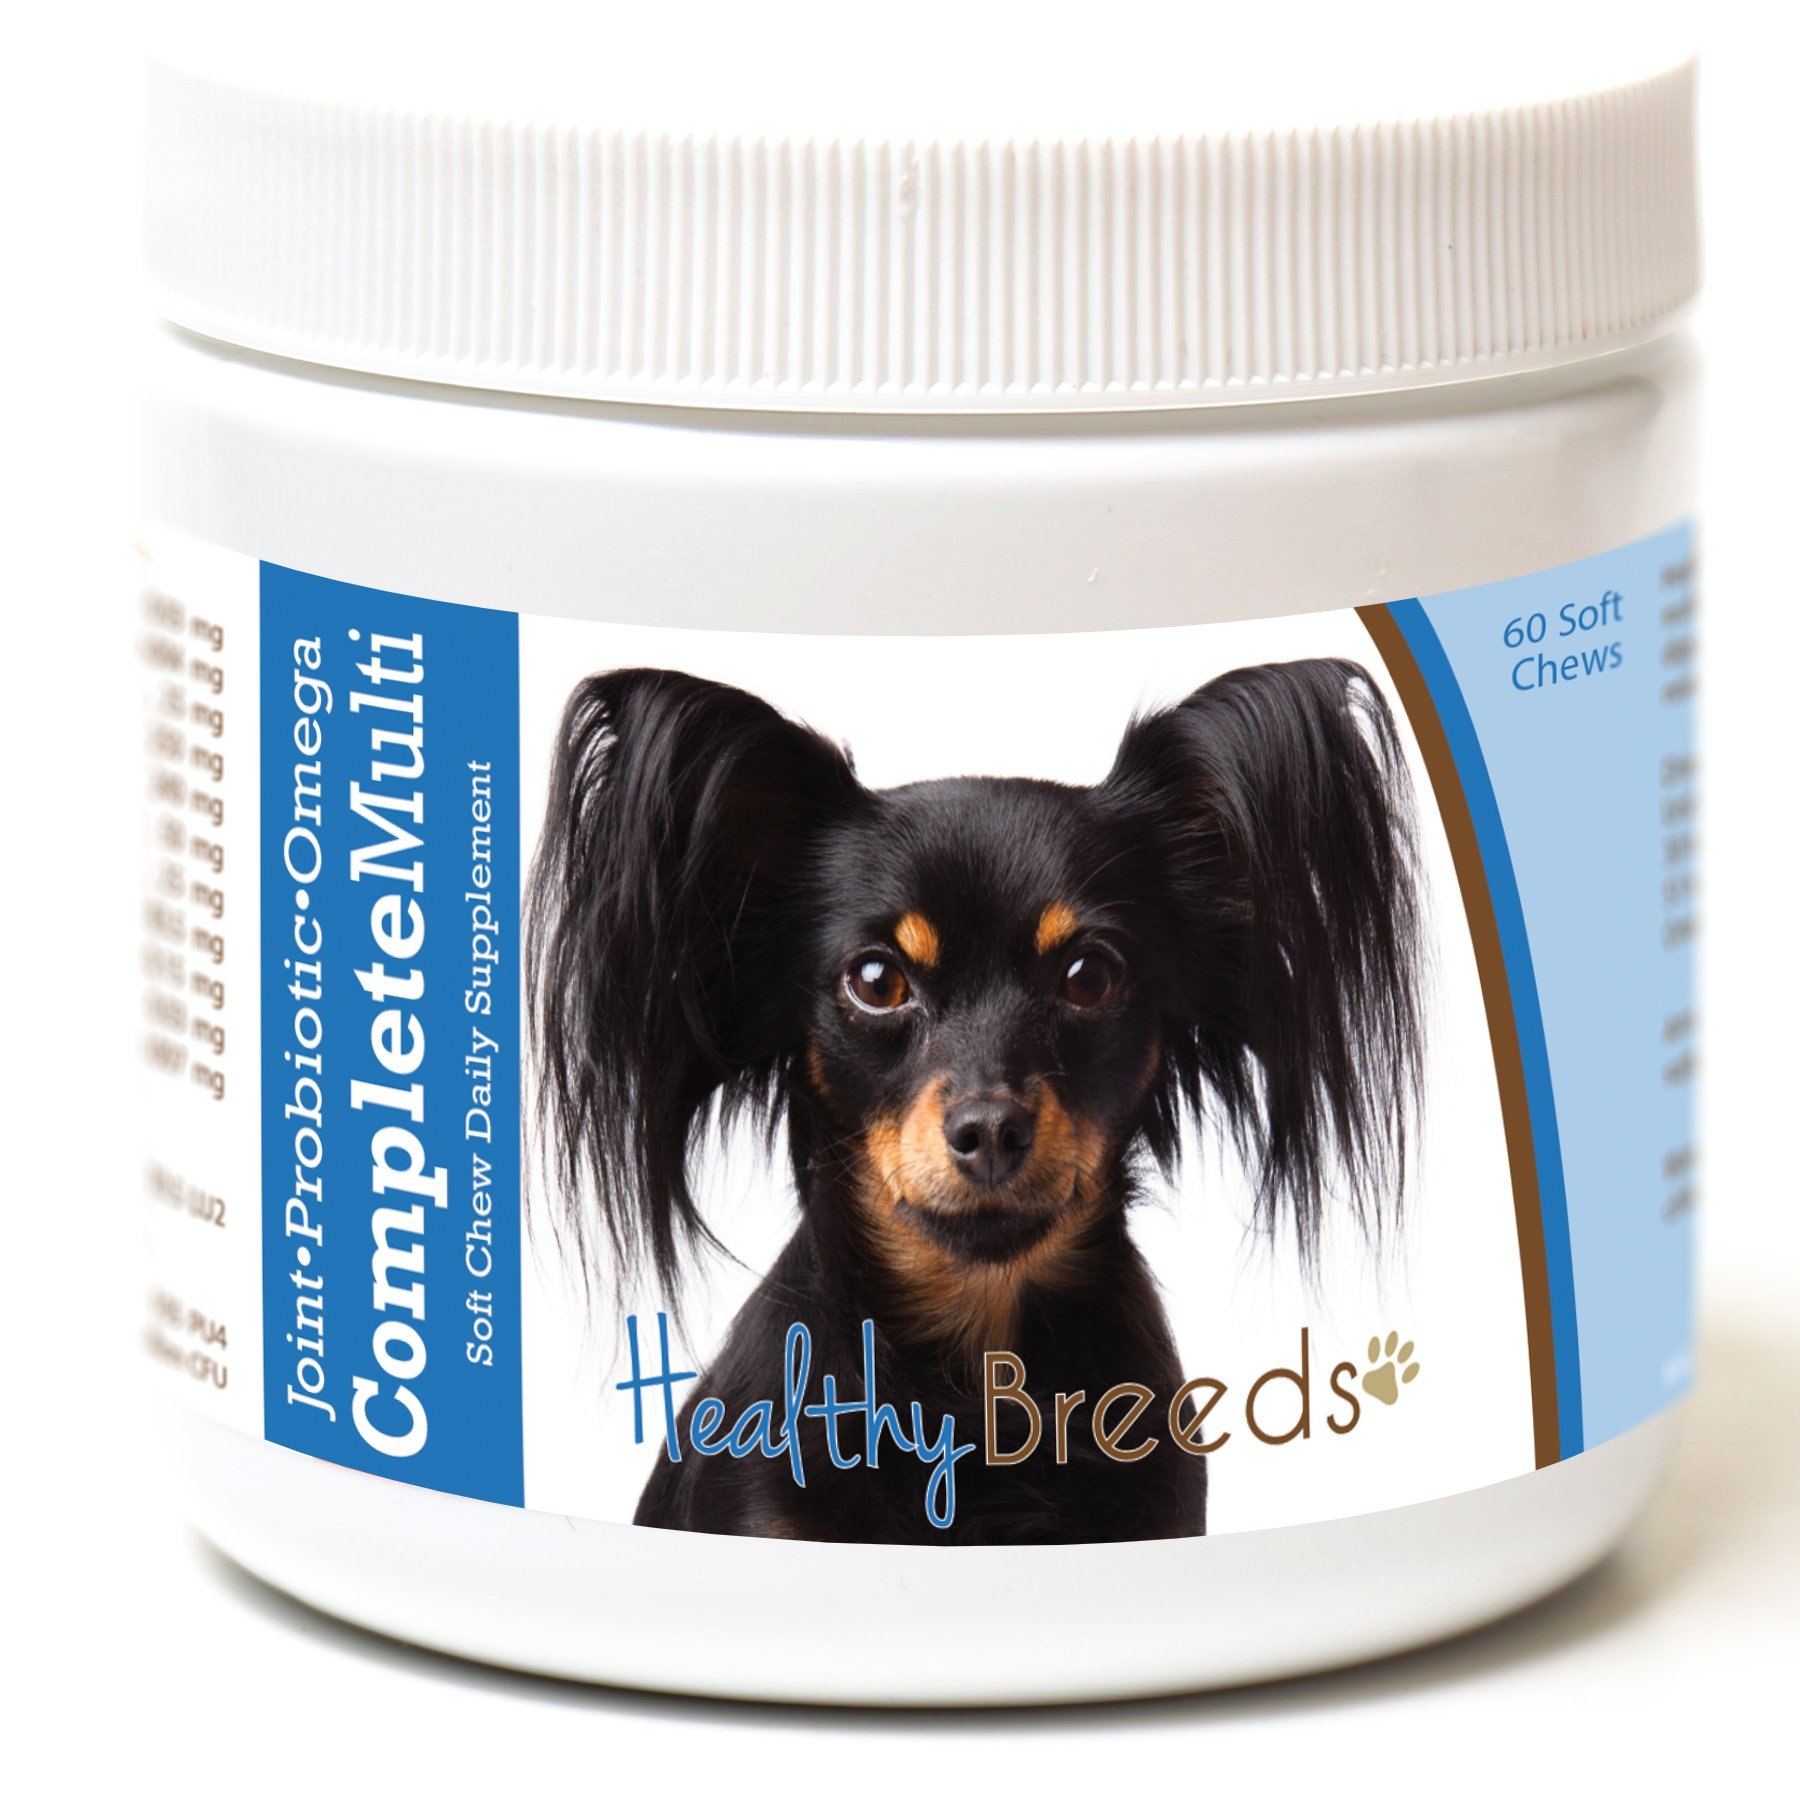 Healthy Breeds Dog Complete Daily Multivitamin Soft Chews for Russian Toy Terrier - Over 200 Breeds - Joint Probiotic Omega 3 6 9 Vitamins - 60 Chews